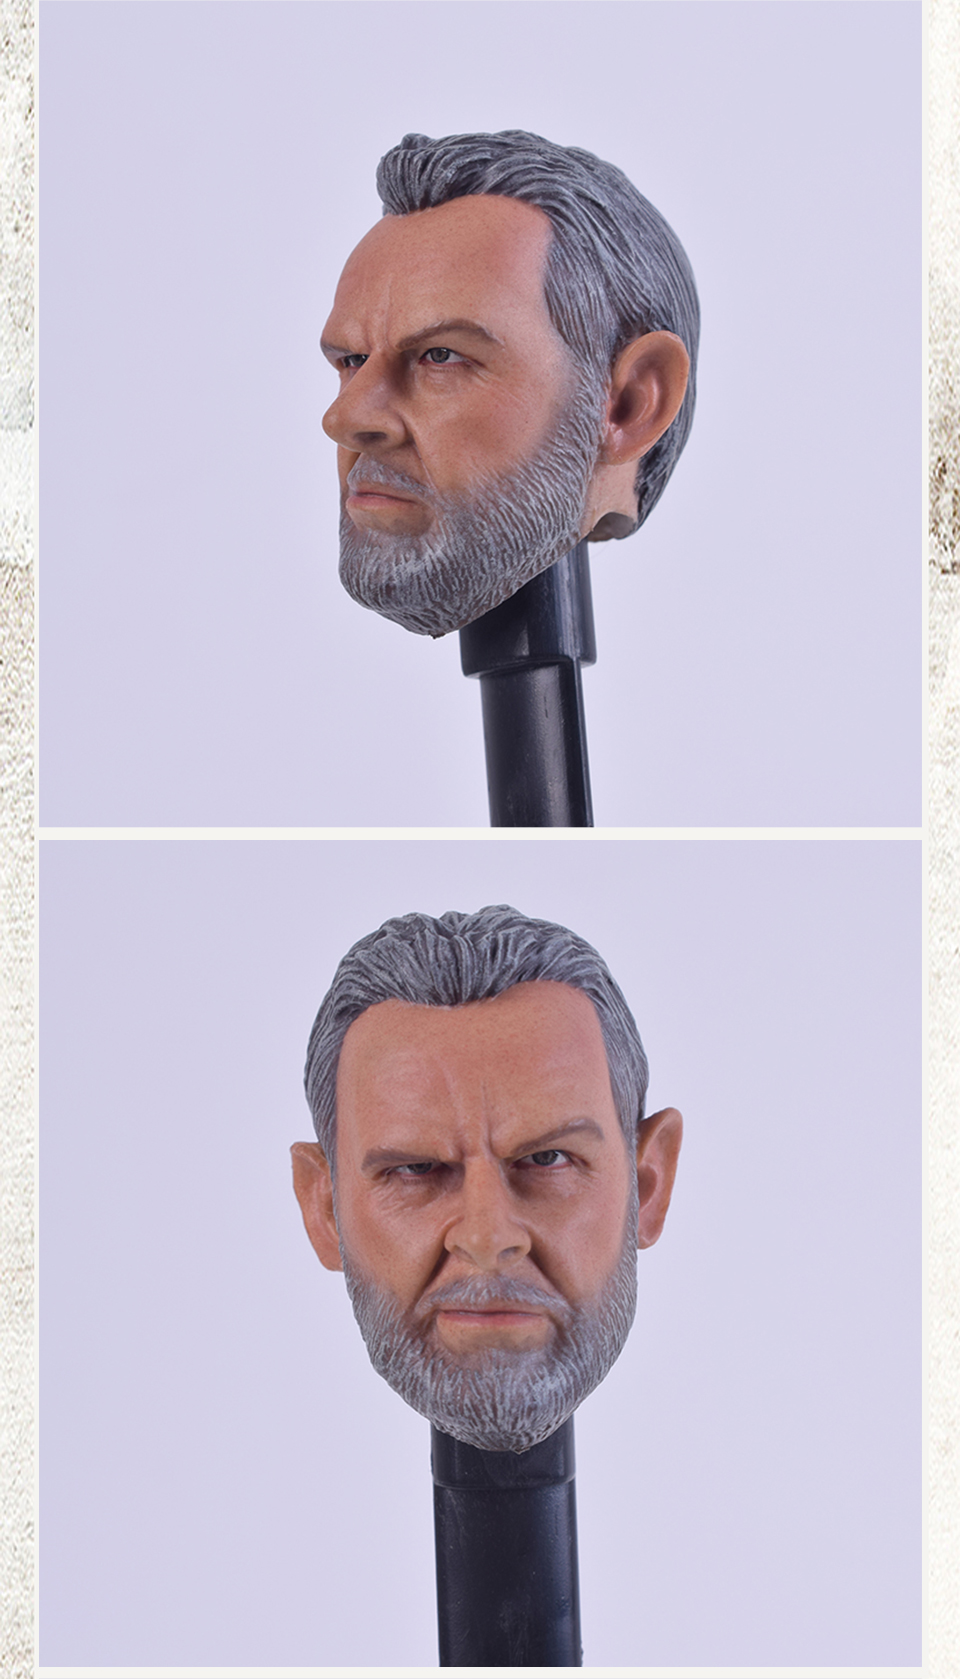 Xin Connery first James Bond VERY HOT Custom Male Sean Connery Head Sculpt 1/6 Fit 12 Inch for Phicen Doll HT TOYS Figure Body